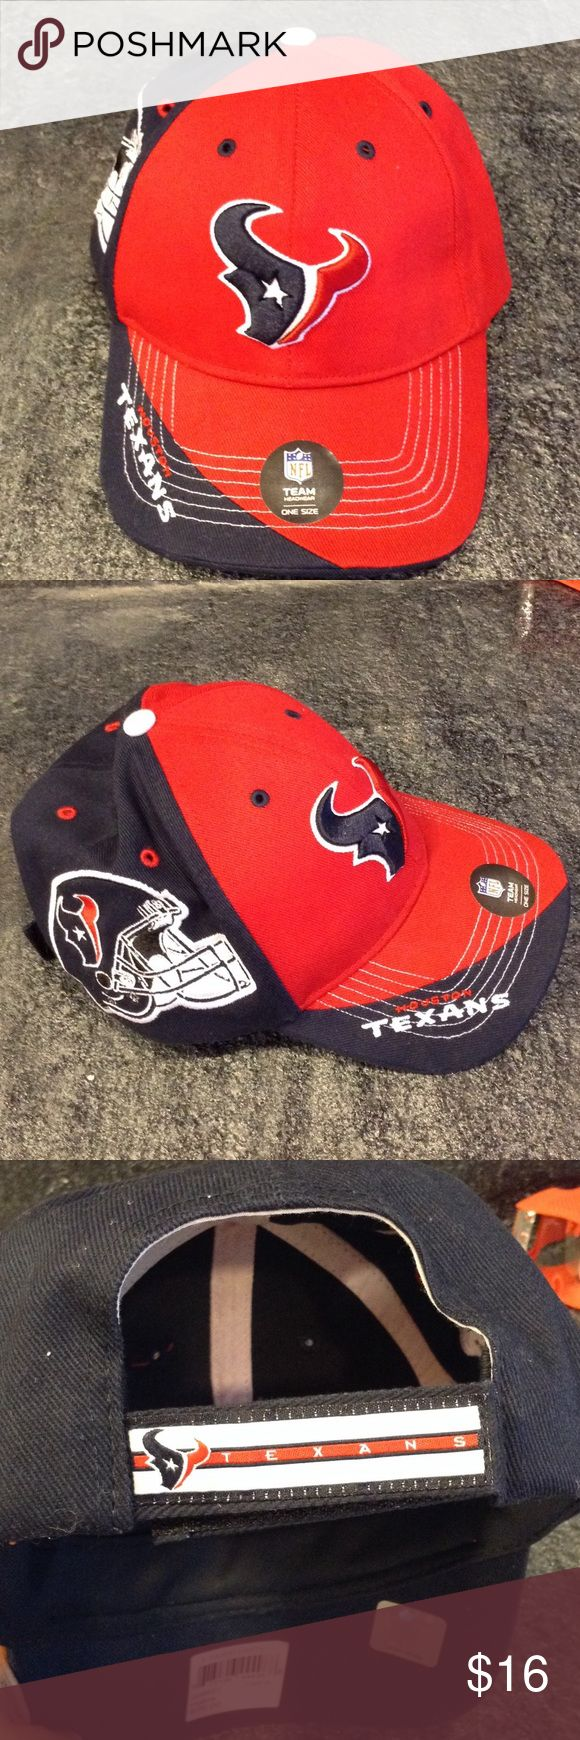 Houston Texans football cap NWT Texans Fans this is for you!! Ready to ship! forty seven Accessories Hats